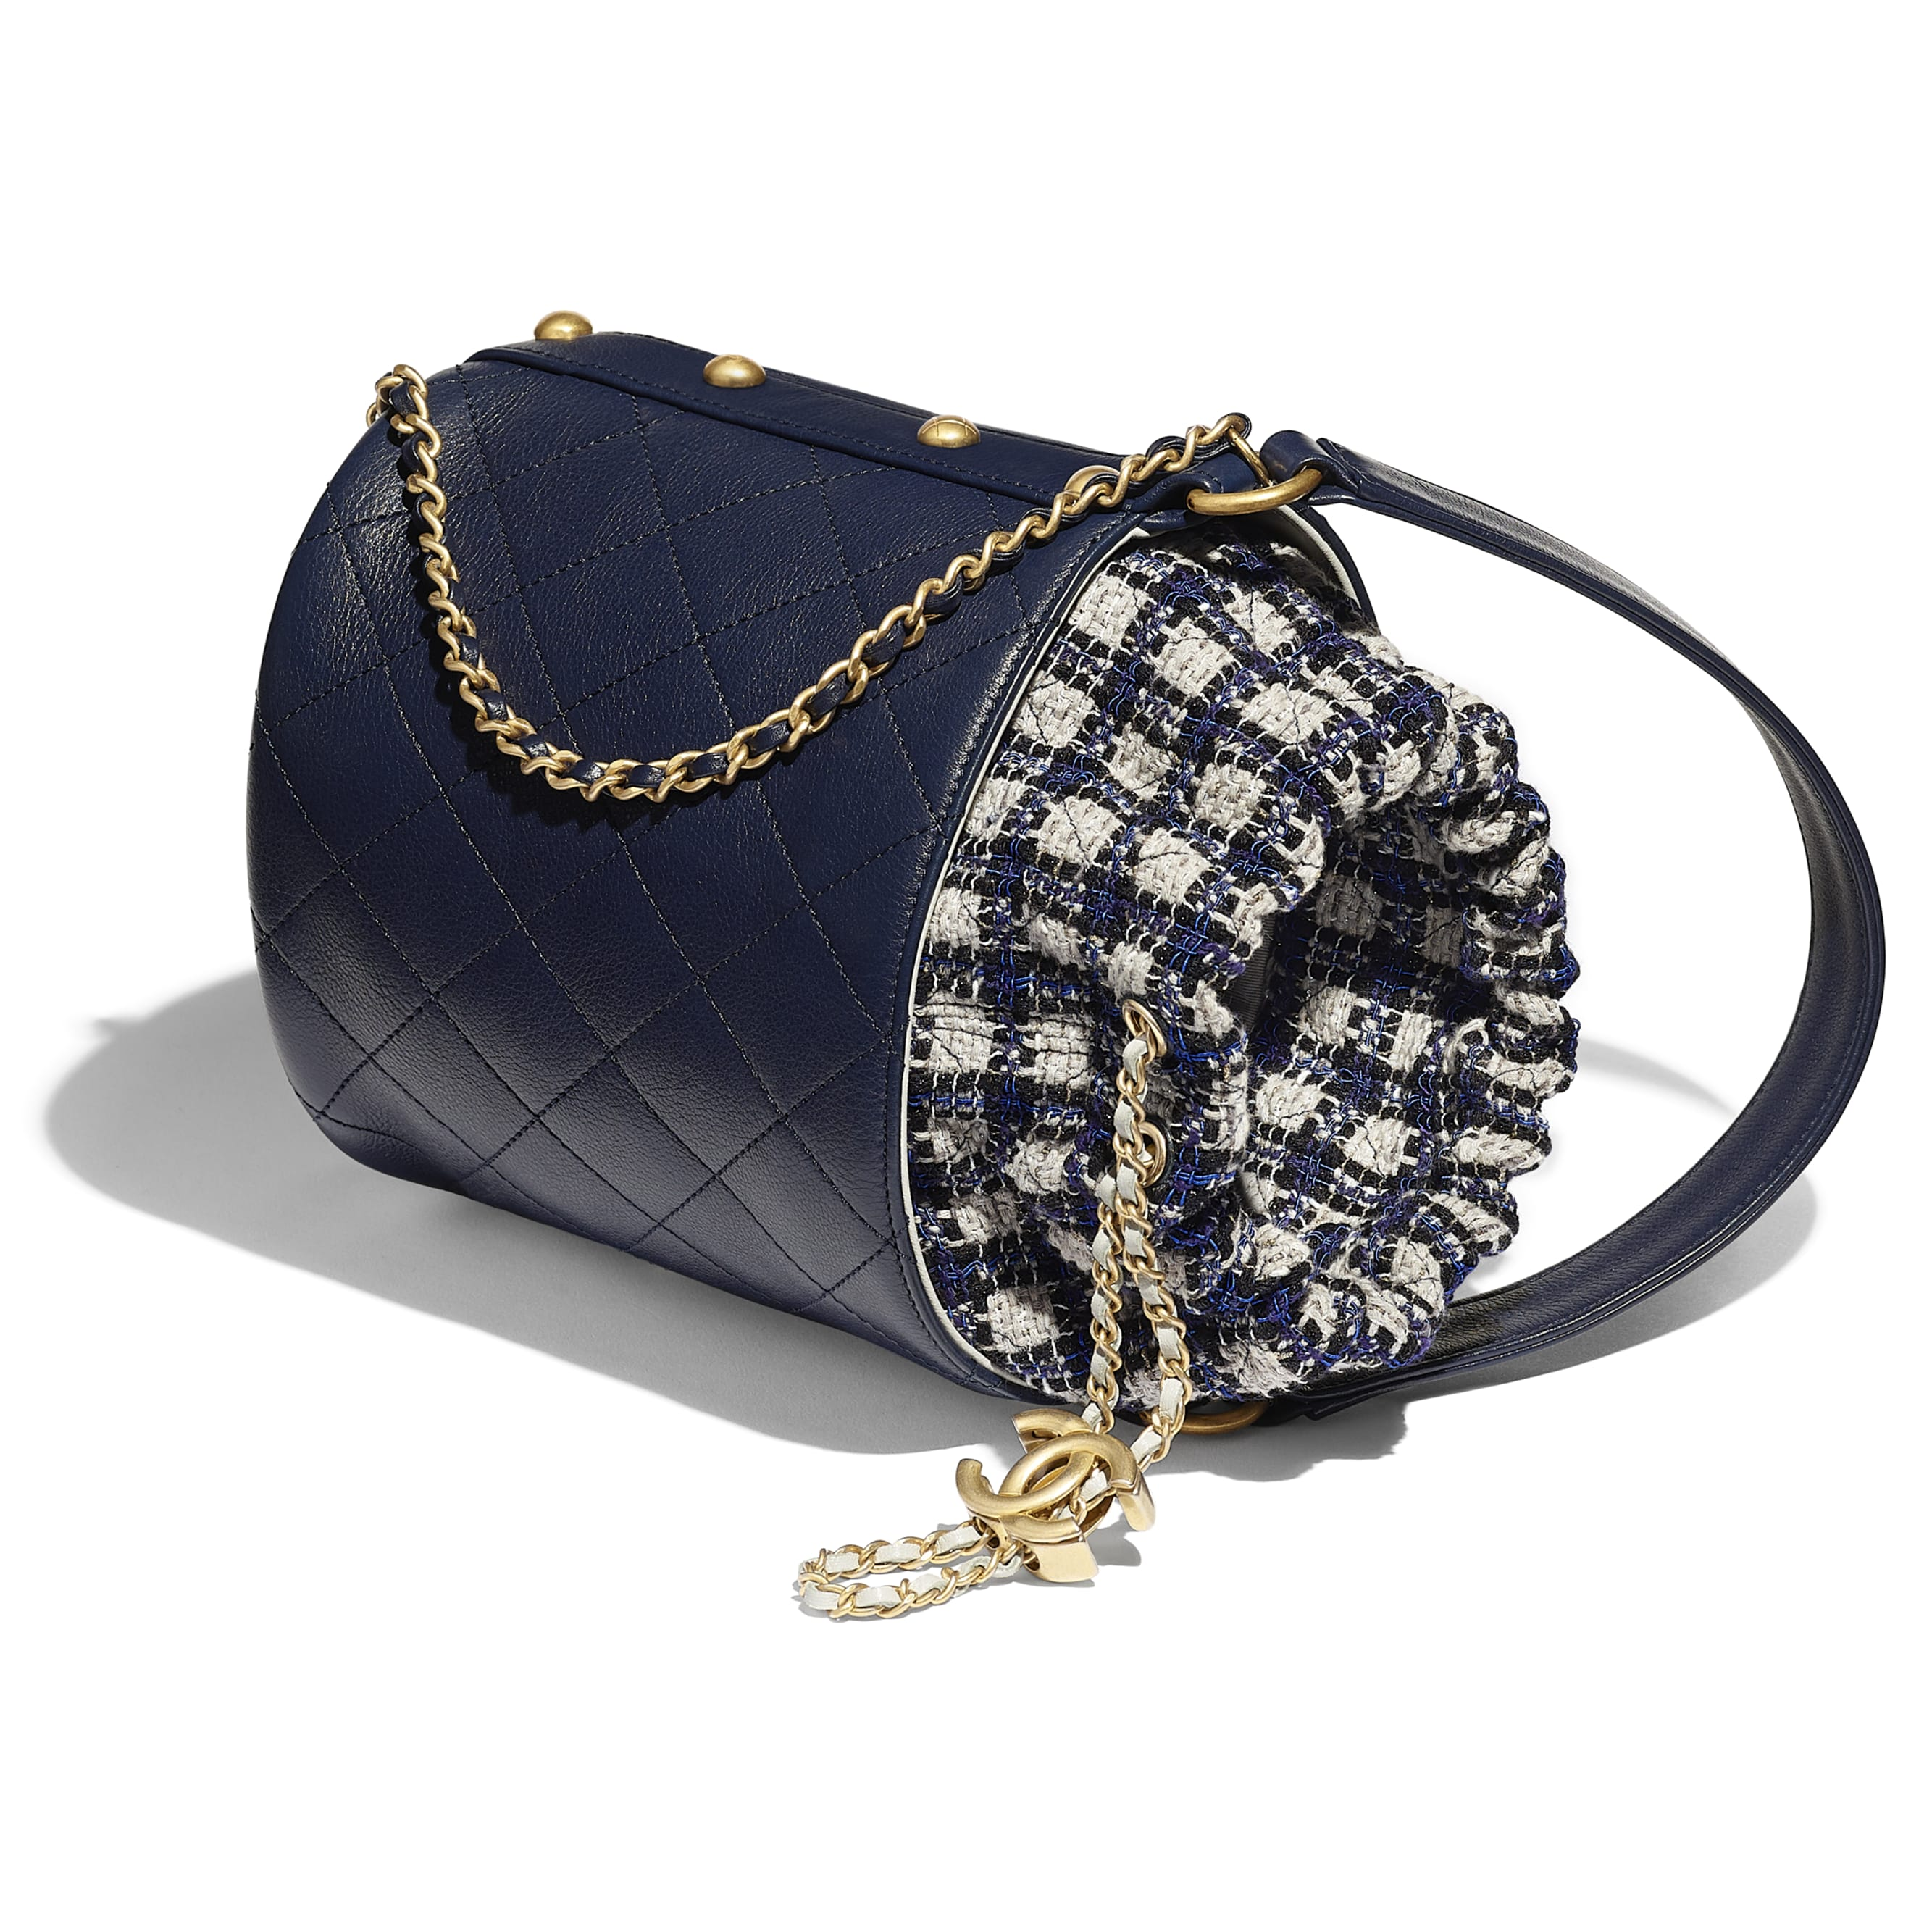 Drawstring Bag - Navy Blue, Black & Grey - Calfskin, Tweed & Gold-Tone Metal - CHANEL - Other view - see standard sized version